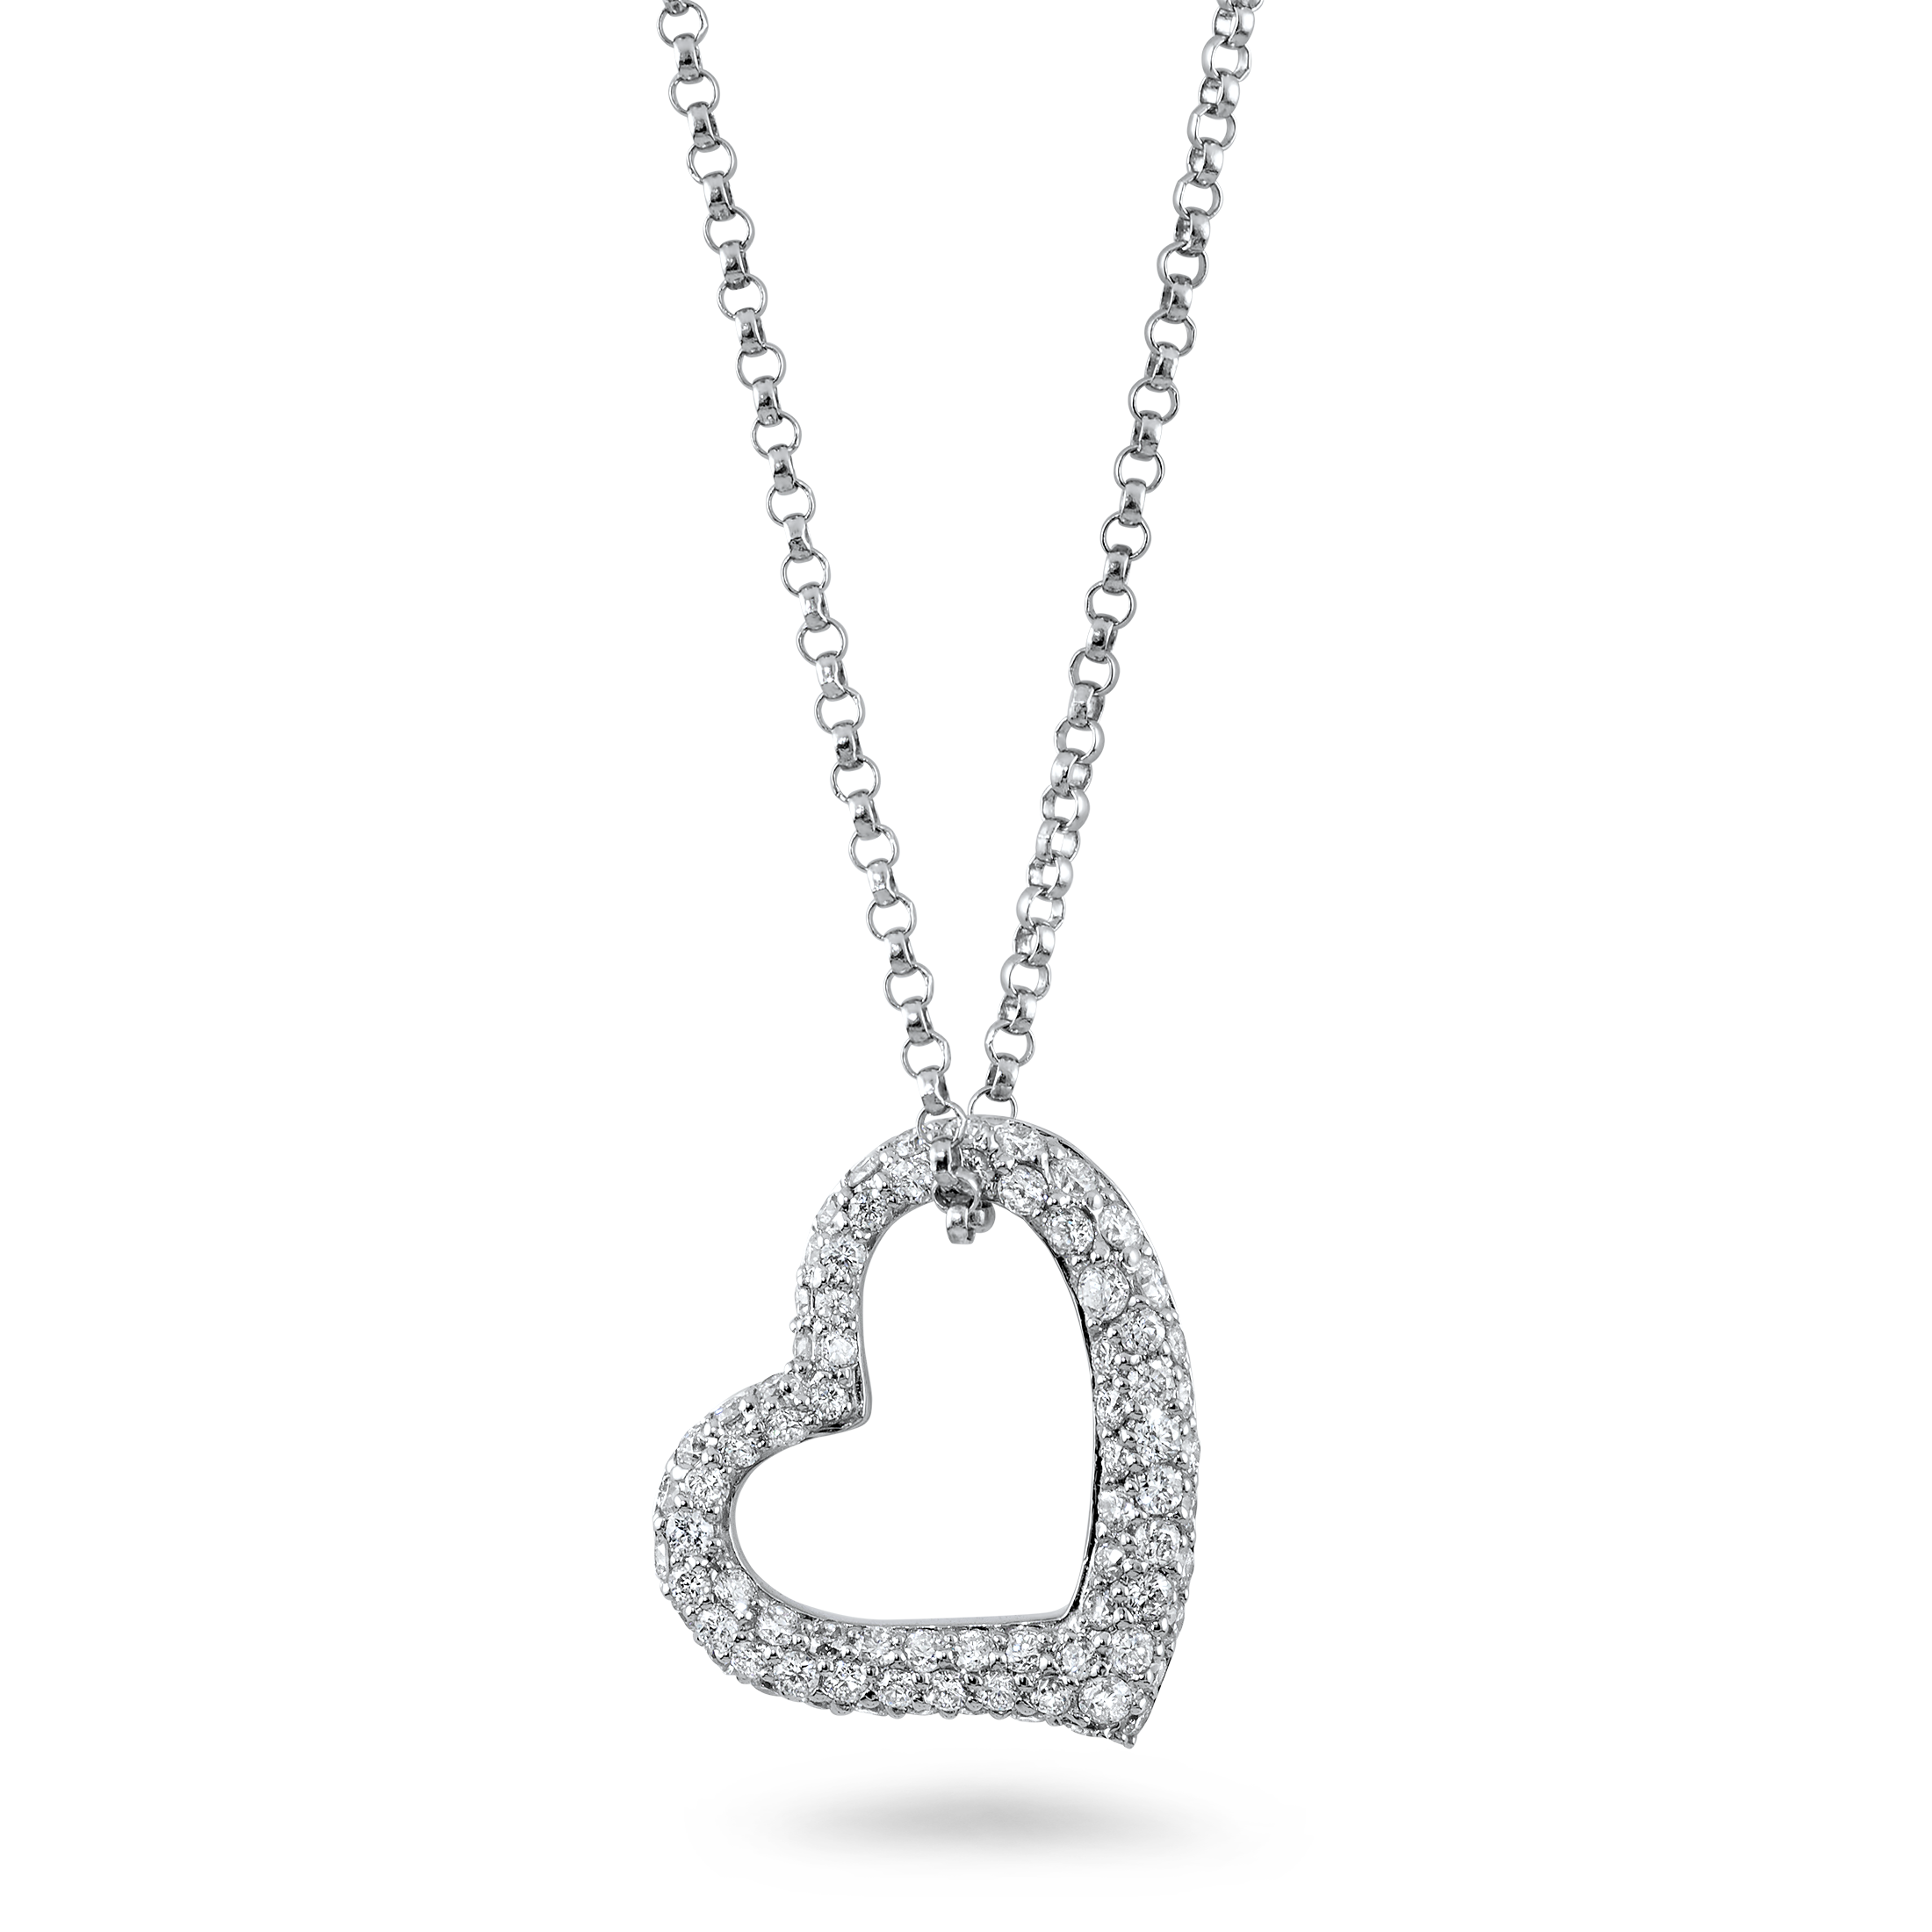 uploads necklace necklace PNG26 3